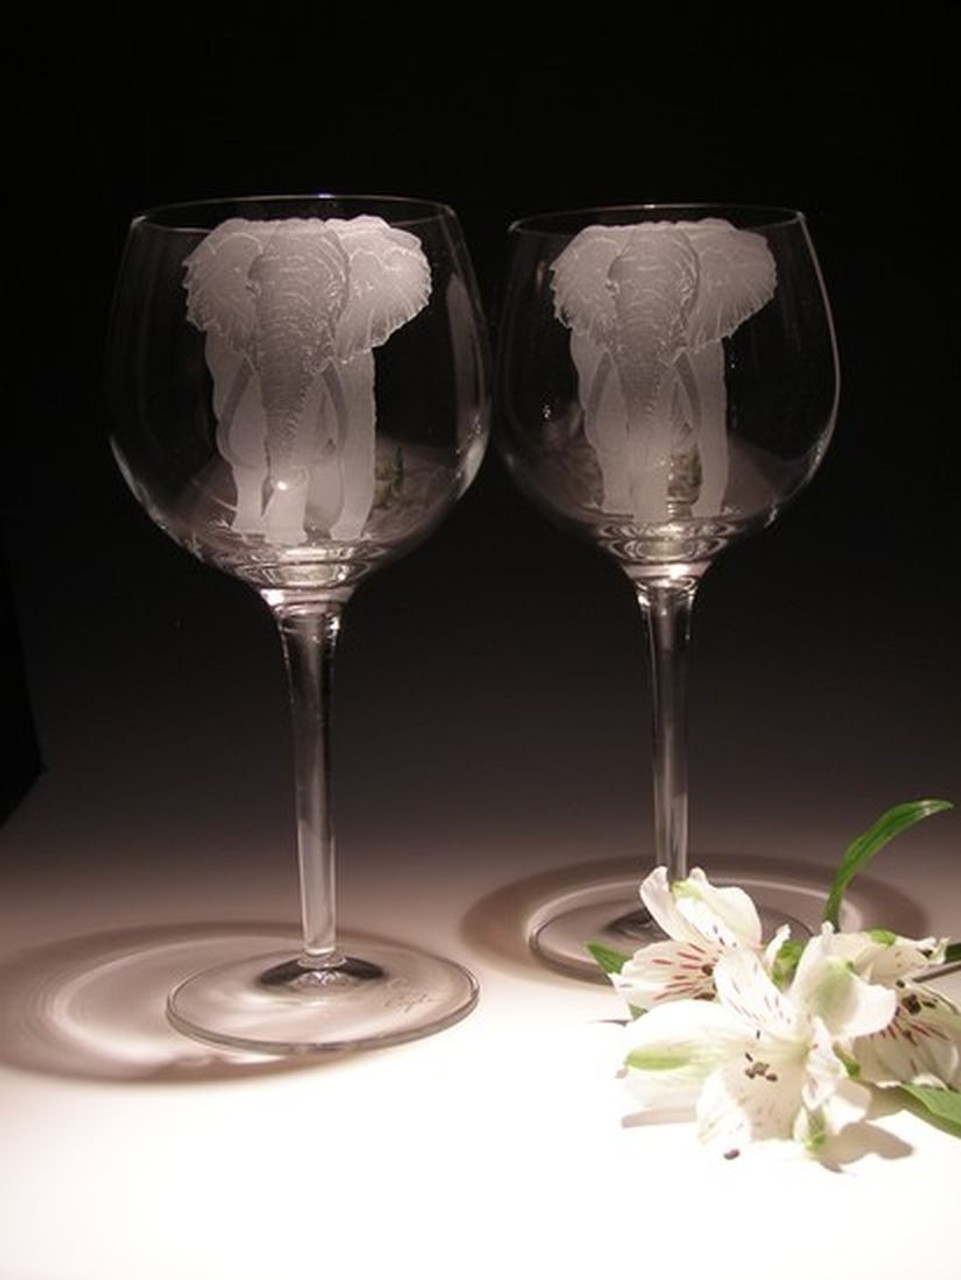 Hand Carved Crystal Wine Glasses - 18 oz - Set of 2 - Personalized